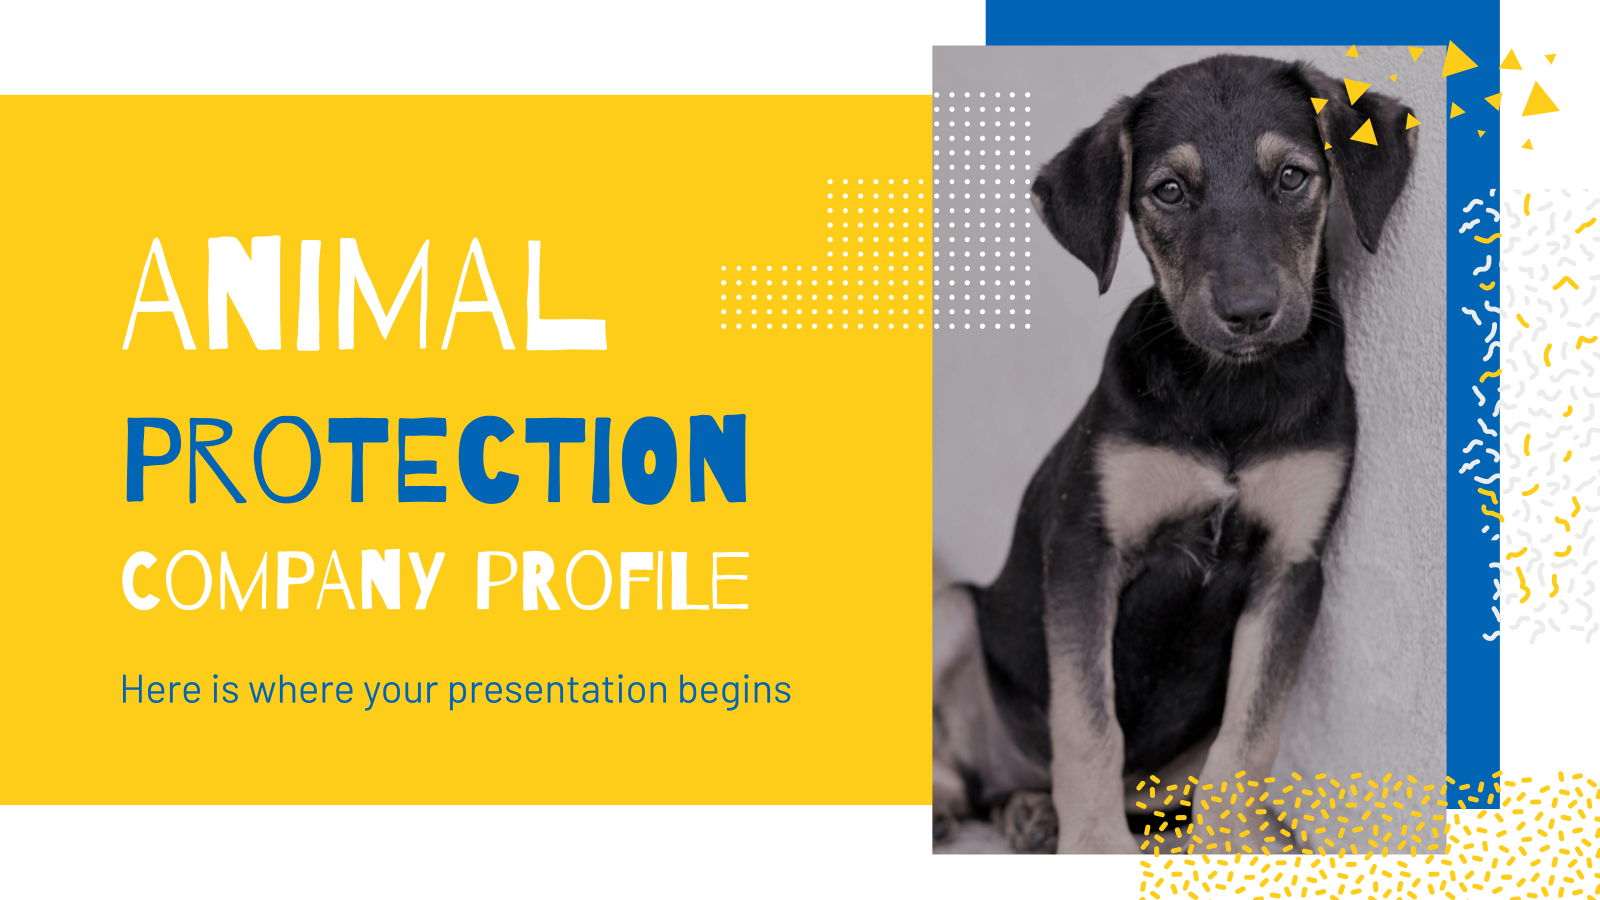 Animal Protection Company Profile presentation template